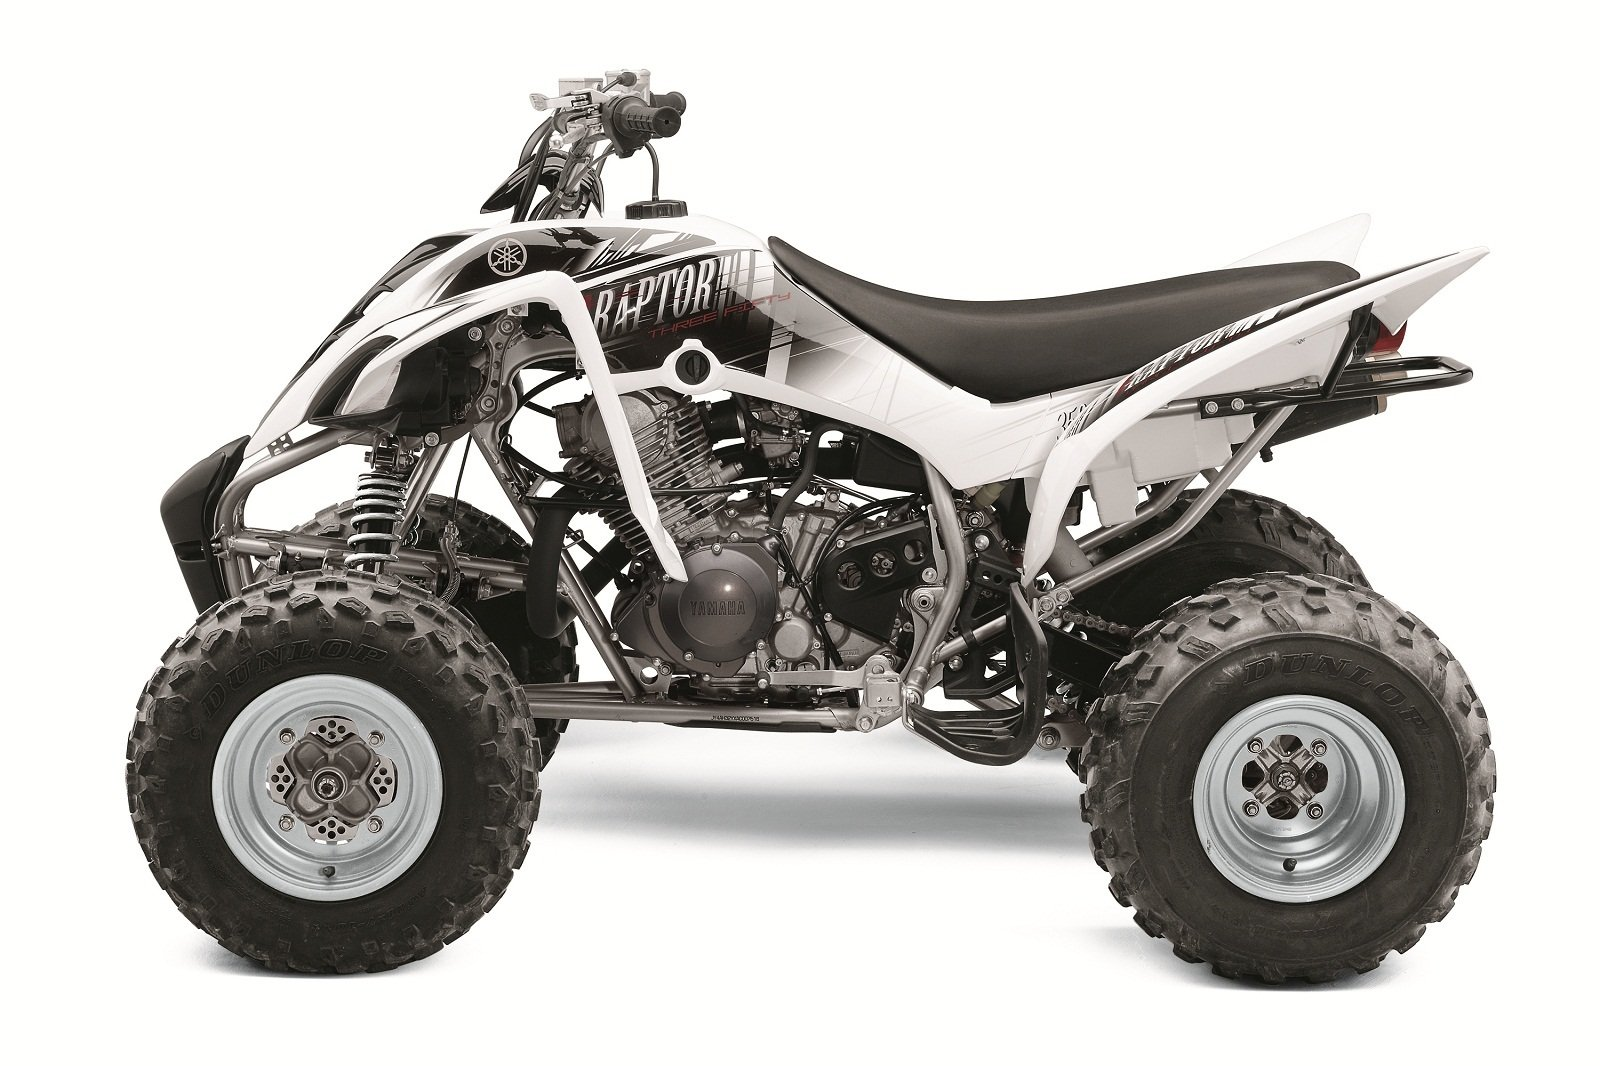 2012 yamaha raptor 350 picture 421267 motorcycle review top speed. Black Bedroom Furniture Sets. Home Design Ideas